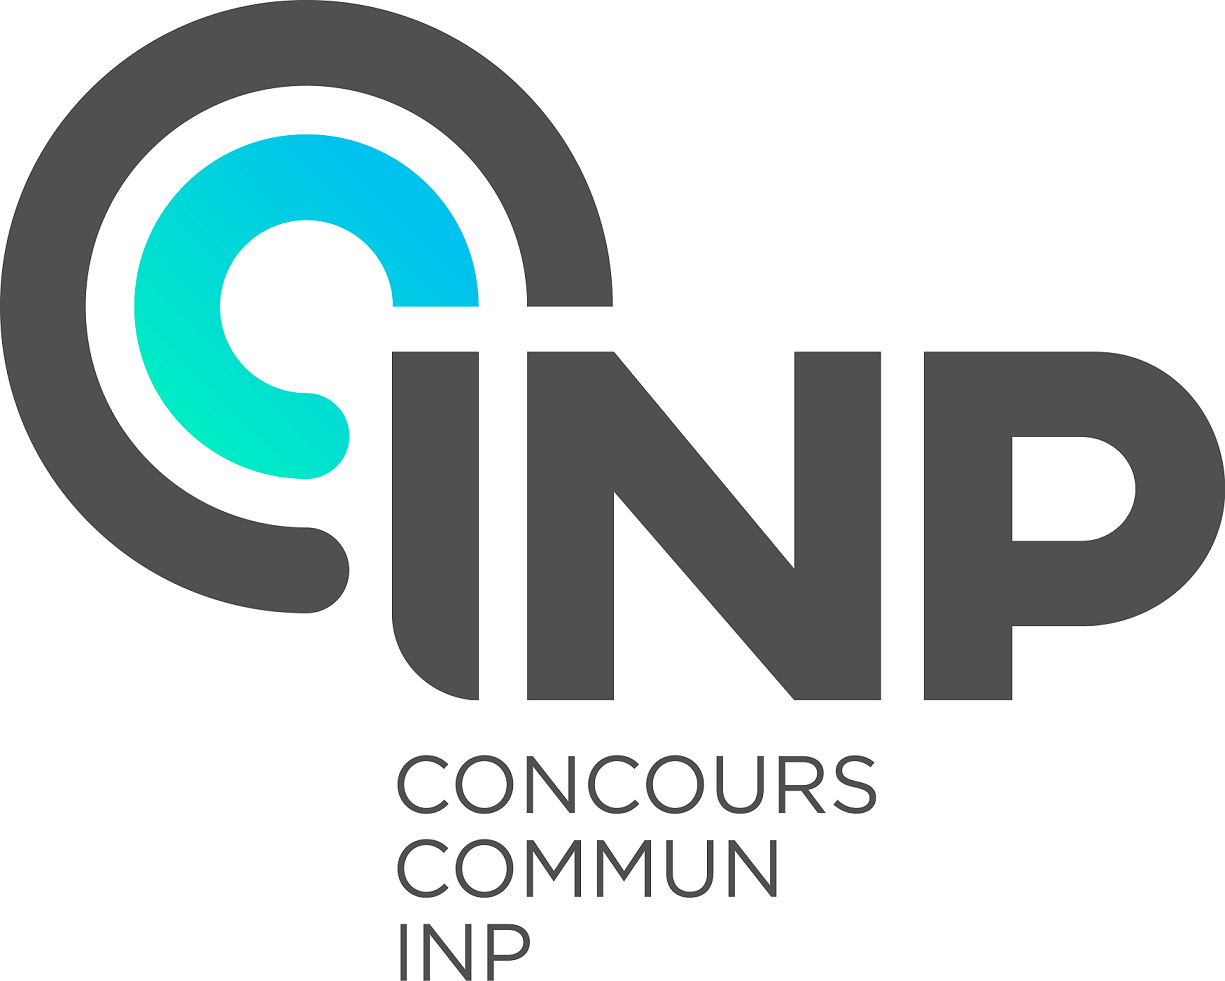 Concours CCNIP